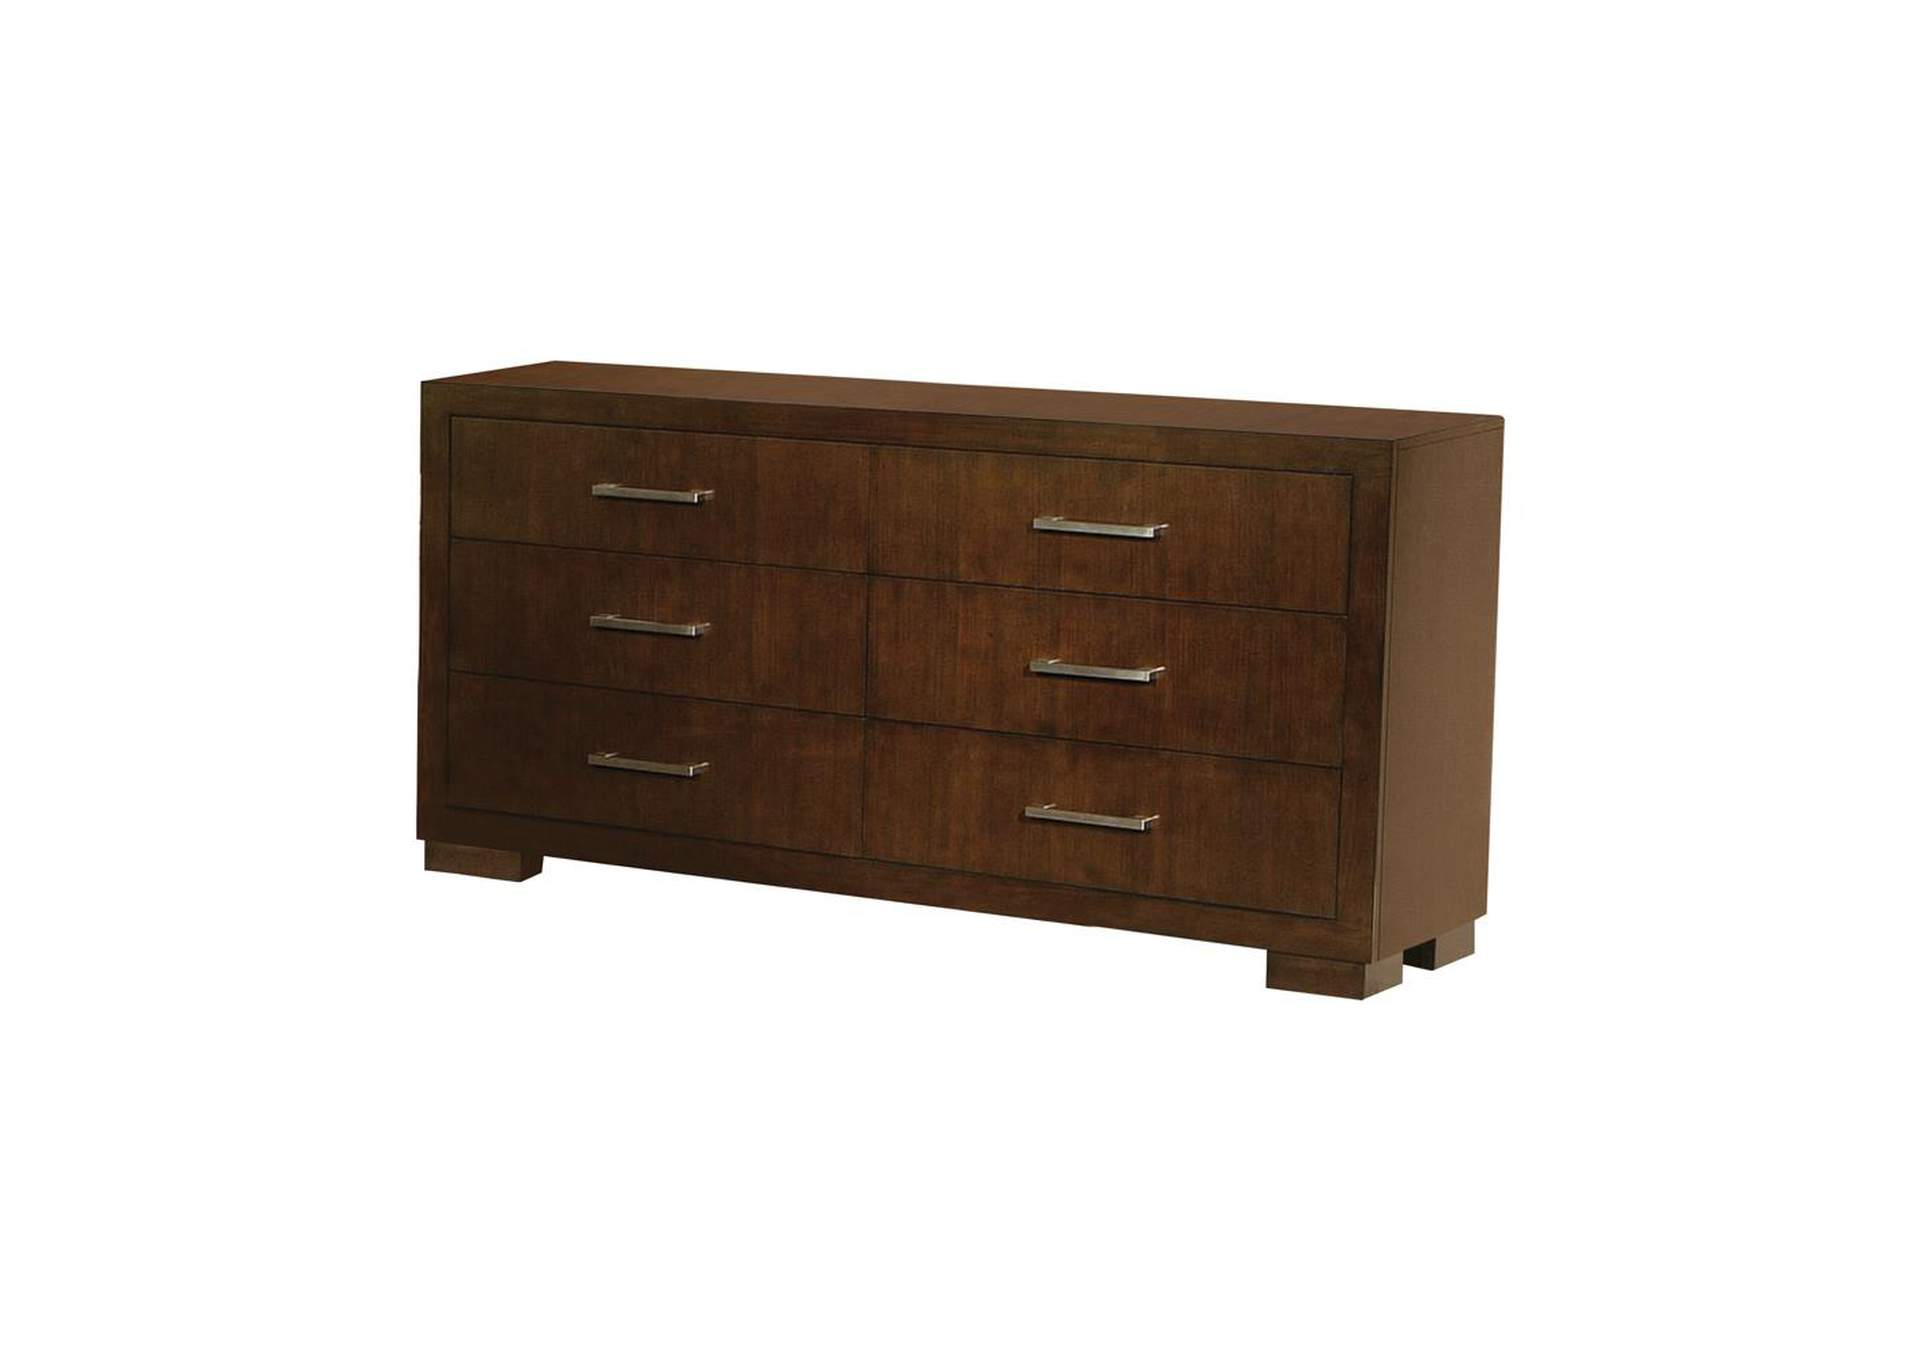 Cappuccino Jessica Cappuccino Six-Drawer Dresser,Coaster Furniture